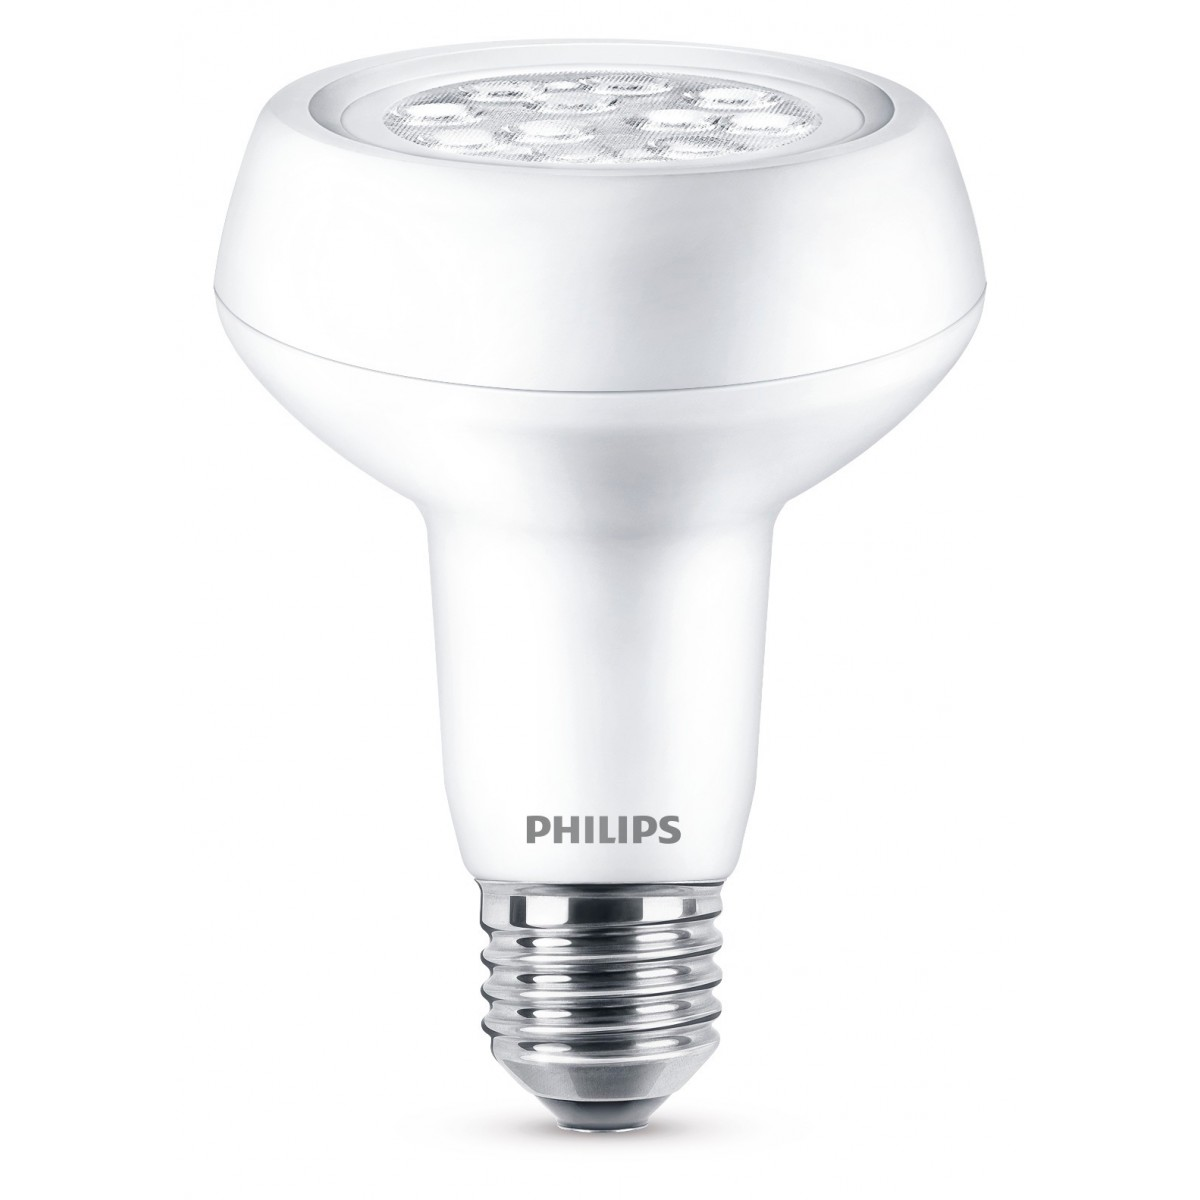 Ampoule LED réflecteur R80 E27 Philips - 360 Lumens - 3,7 W